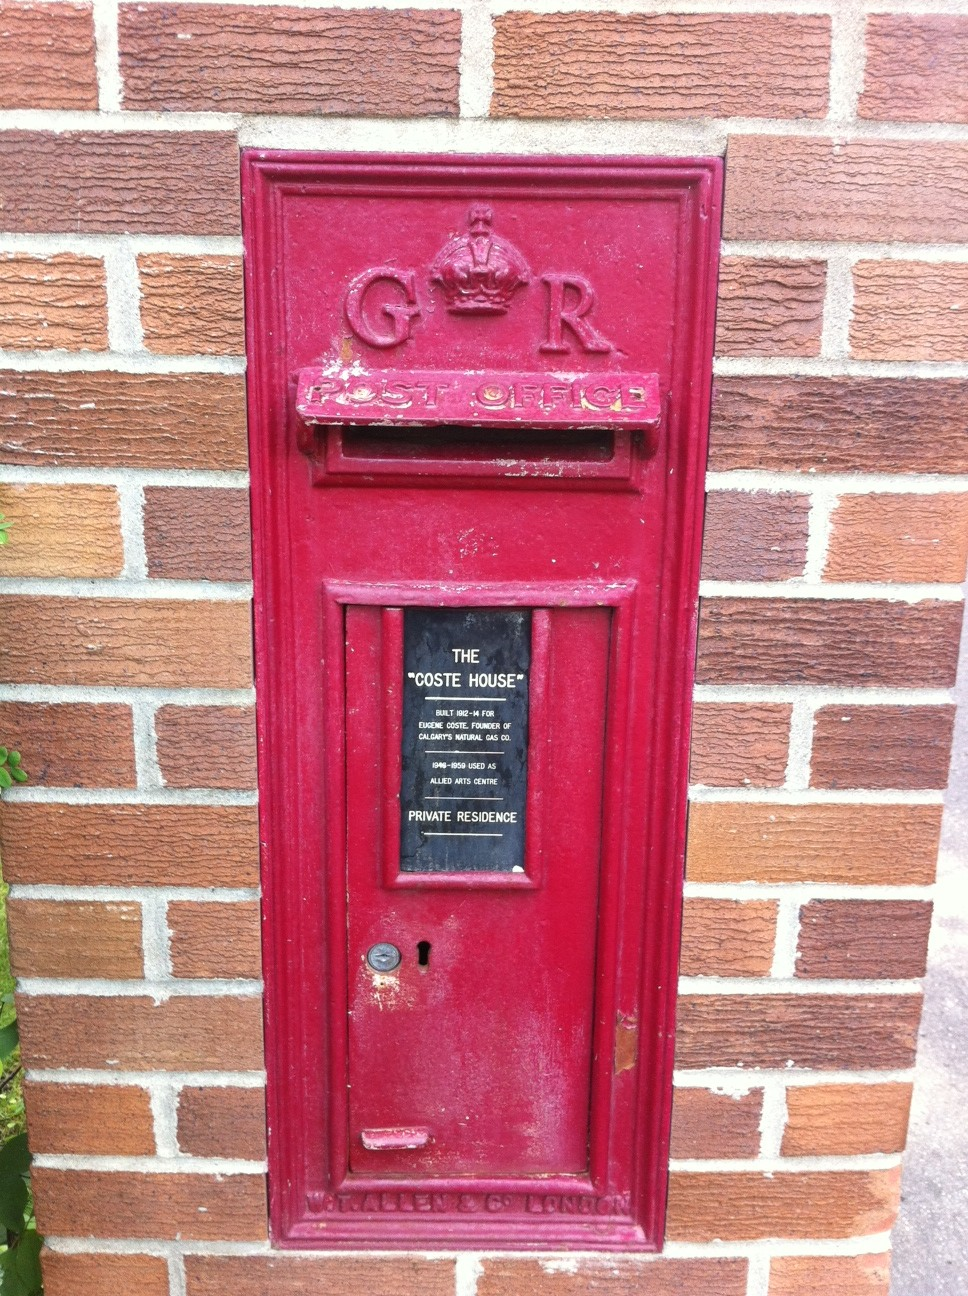 Coste House mailbox